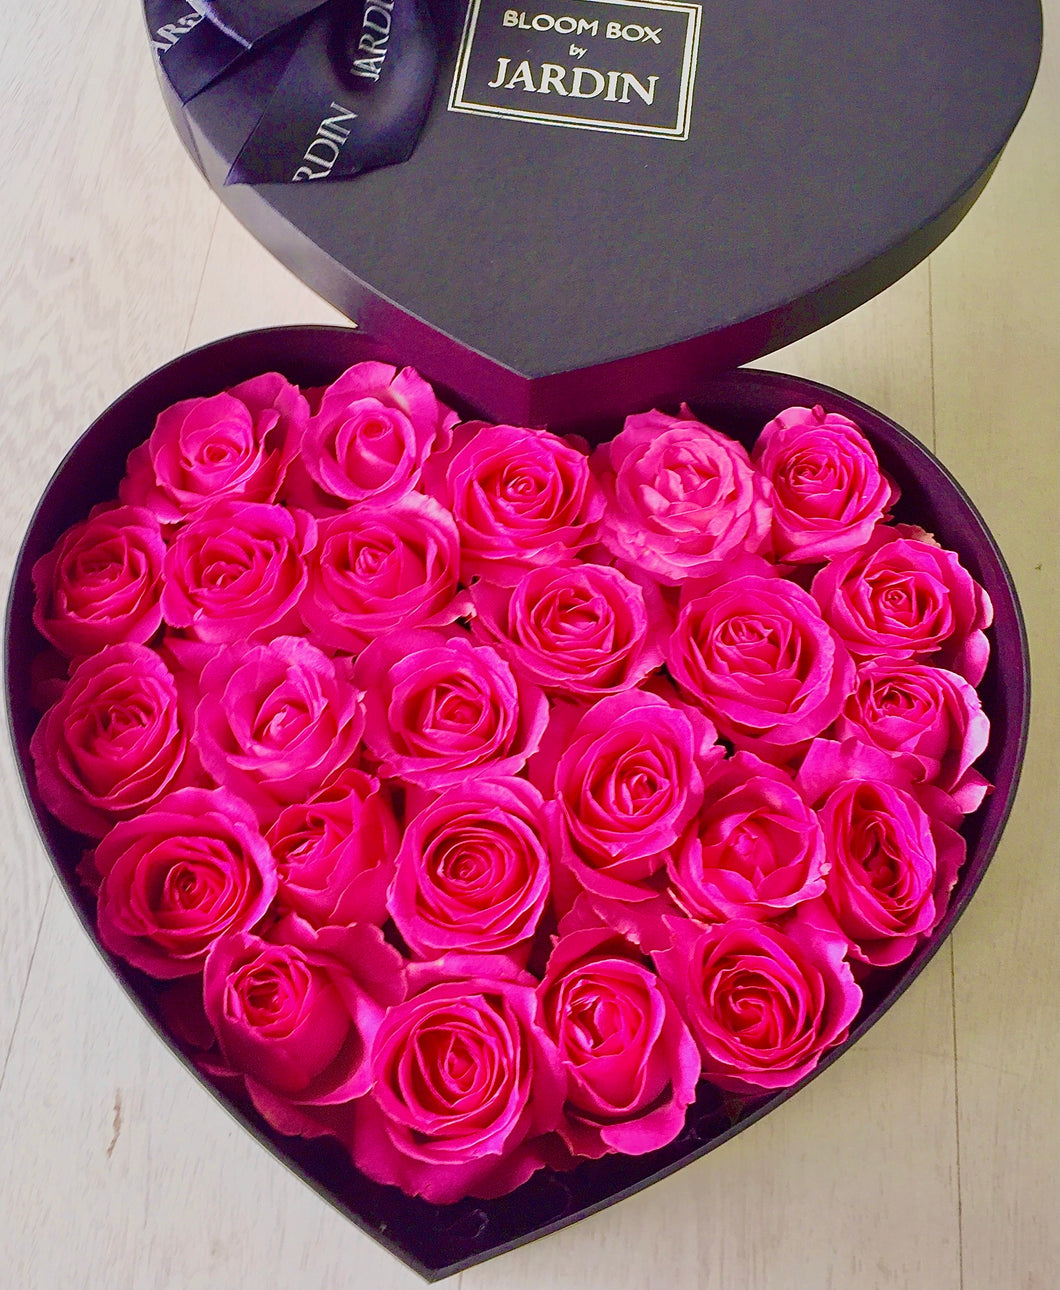 Full Roses Heart Bloombox